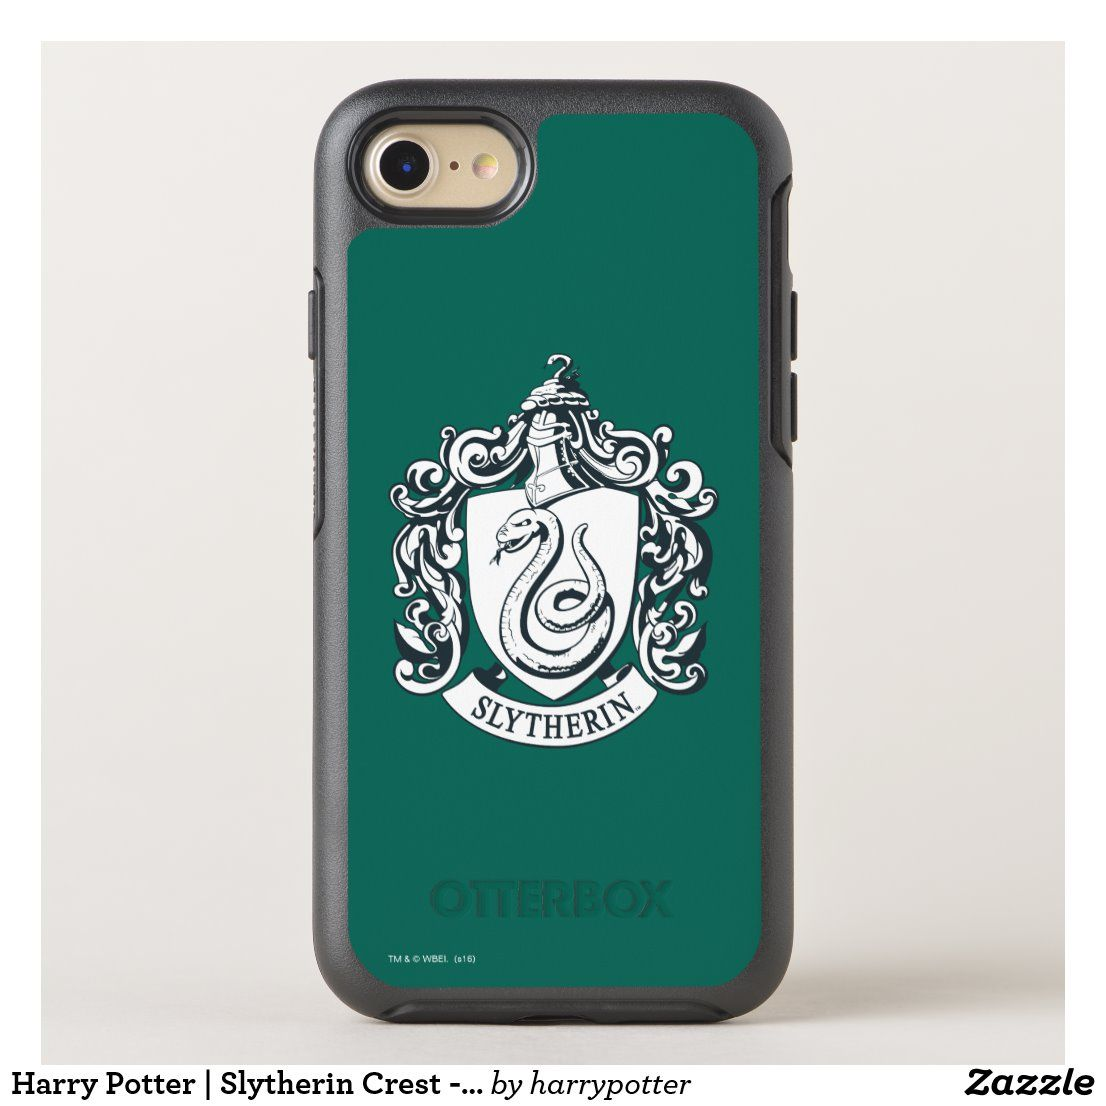 Harry potter slytherin crest black and white otterbox